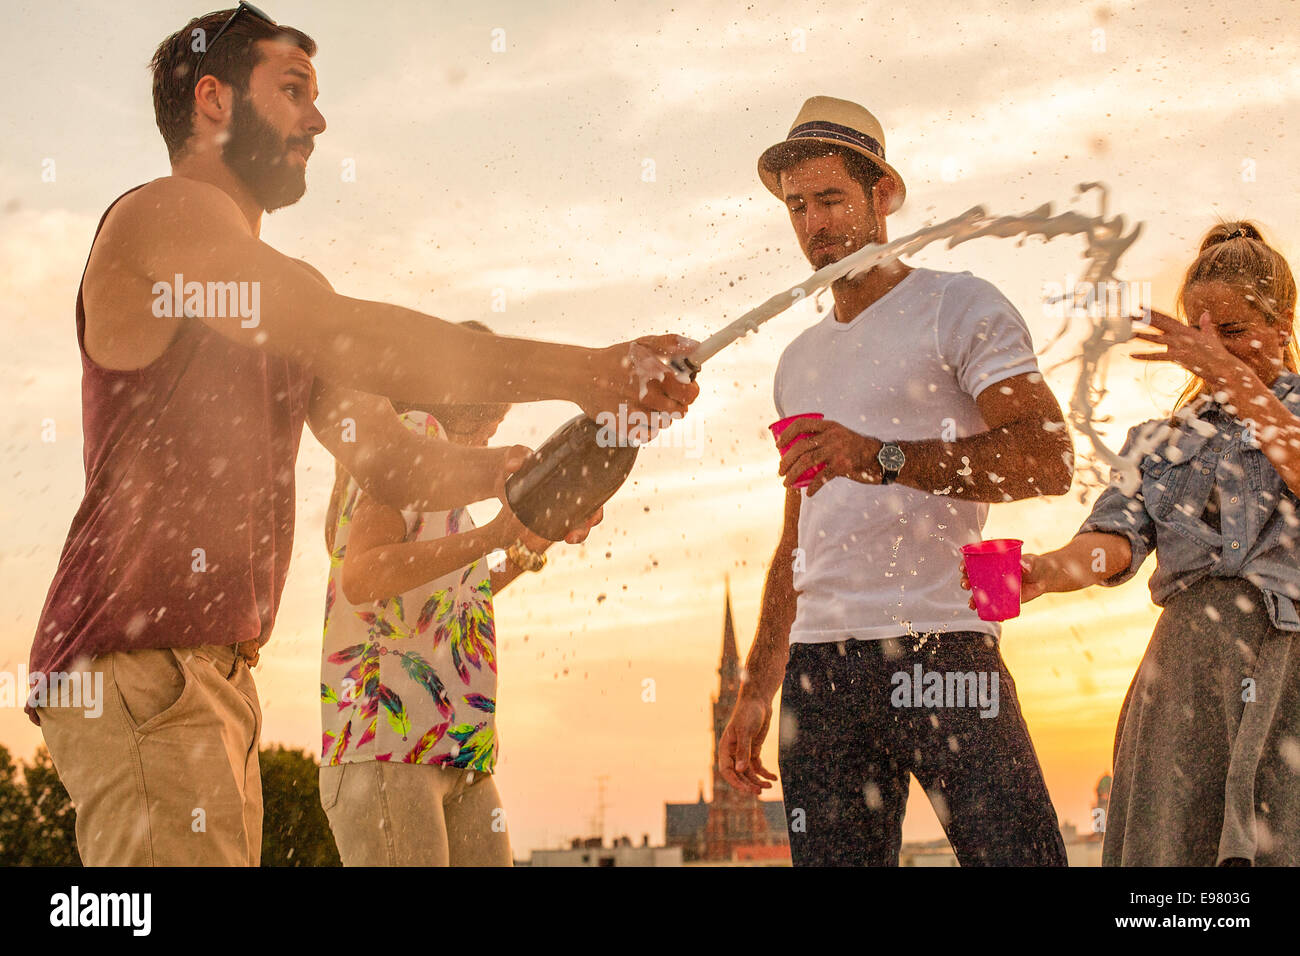 Young people at rooftop party fooling around - Stock Image